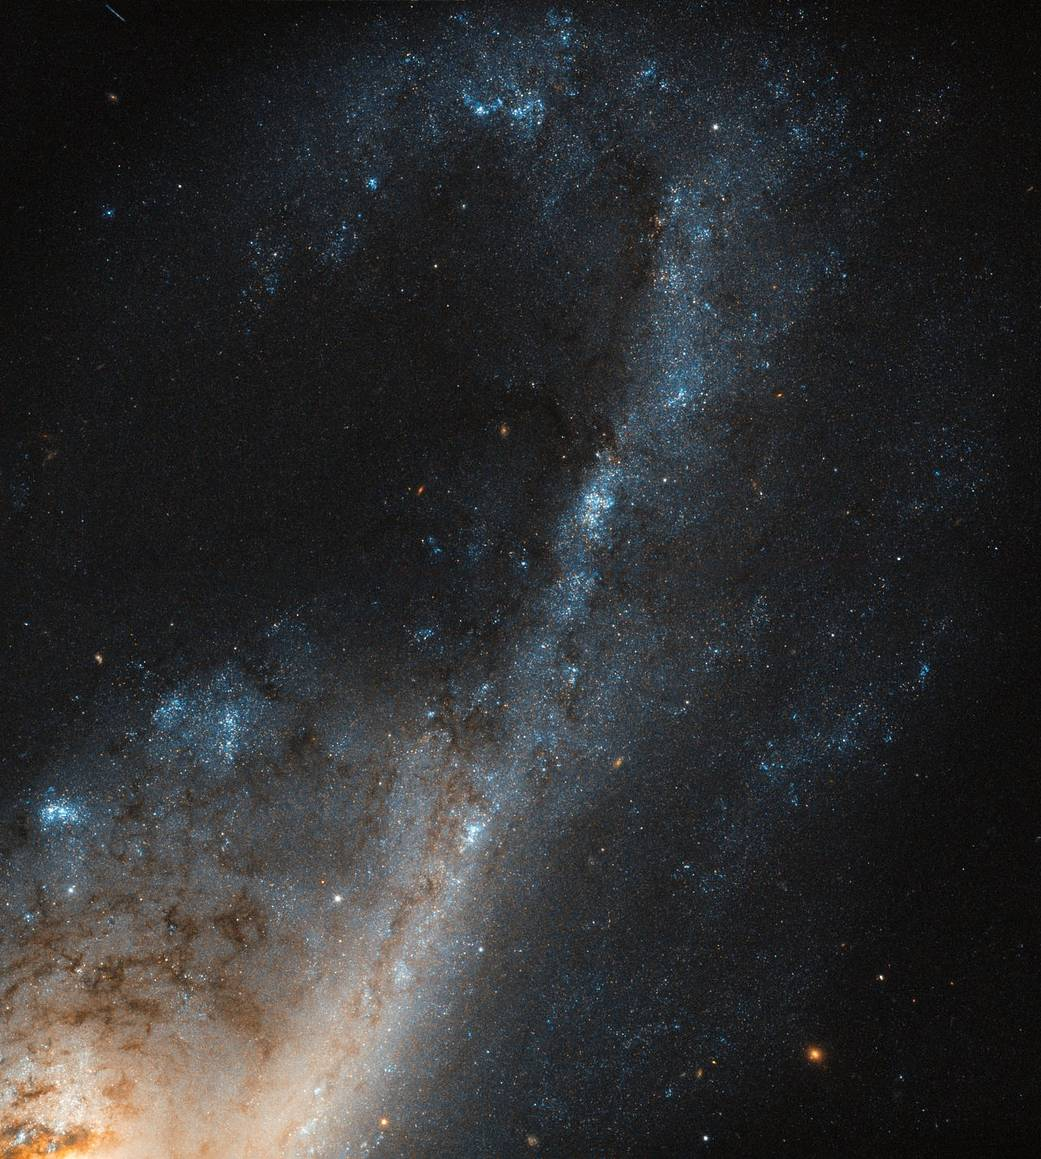 closup of spiral galaxy arm with blue clusters